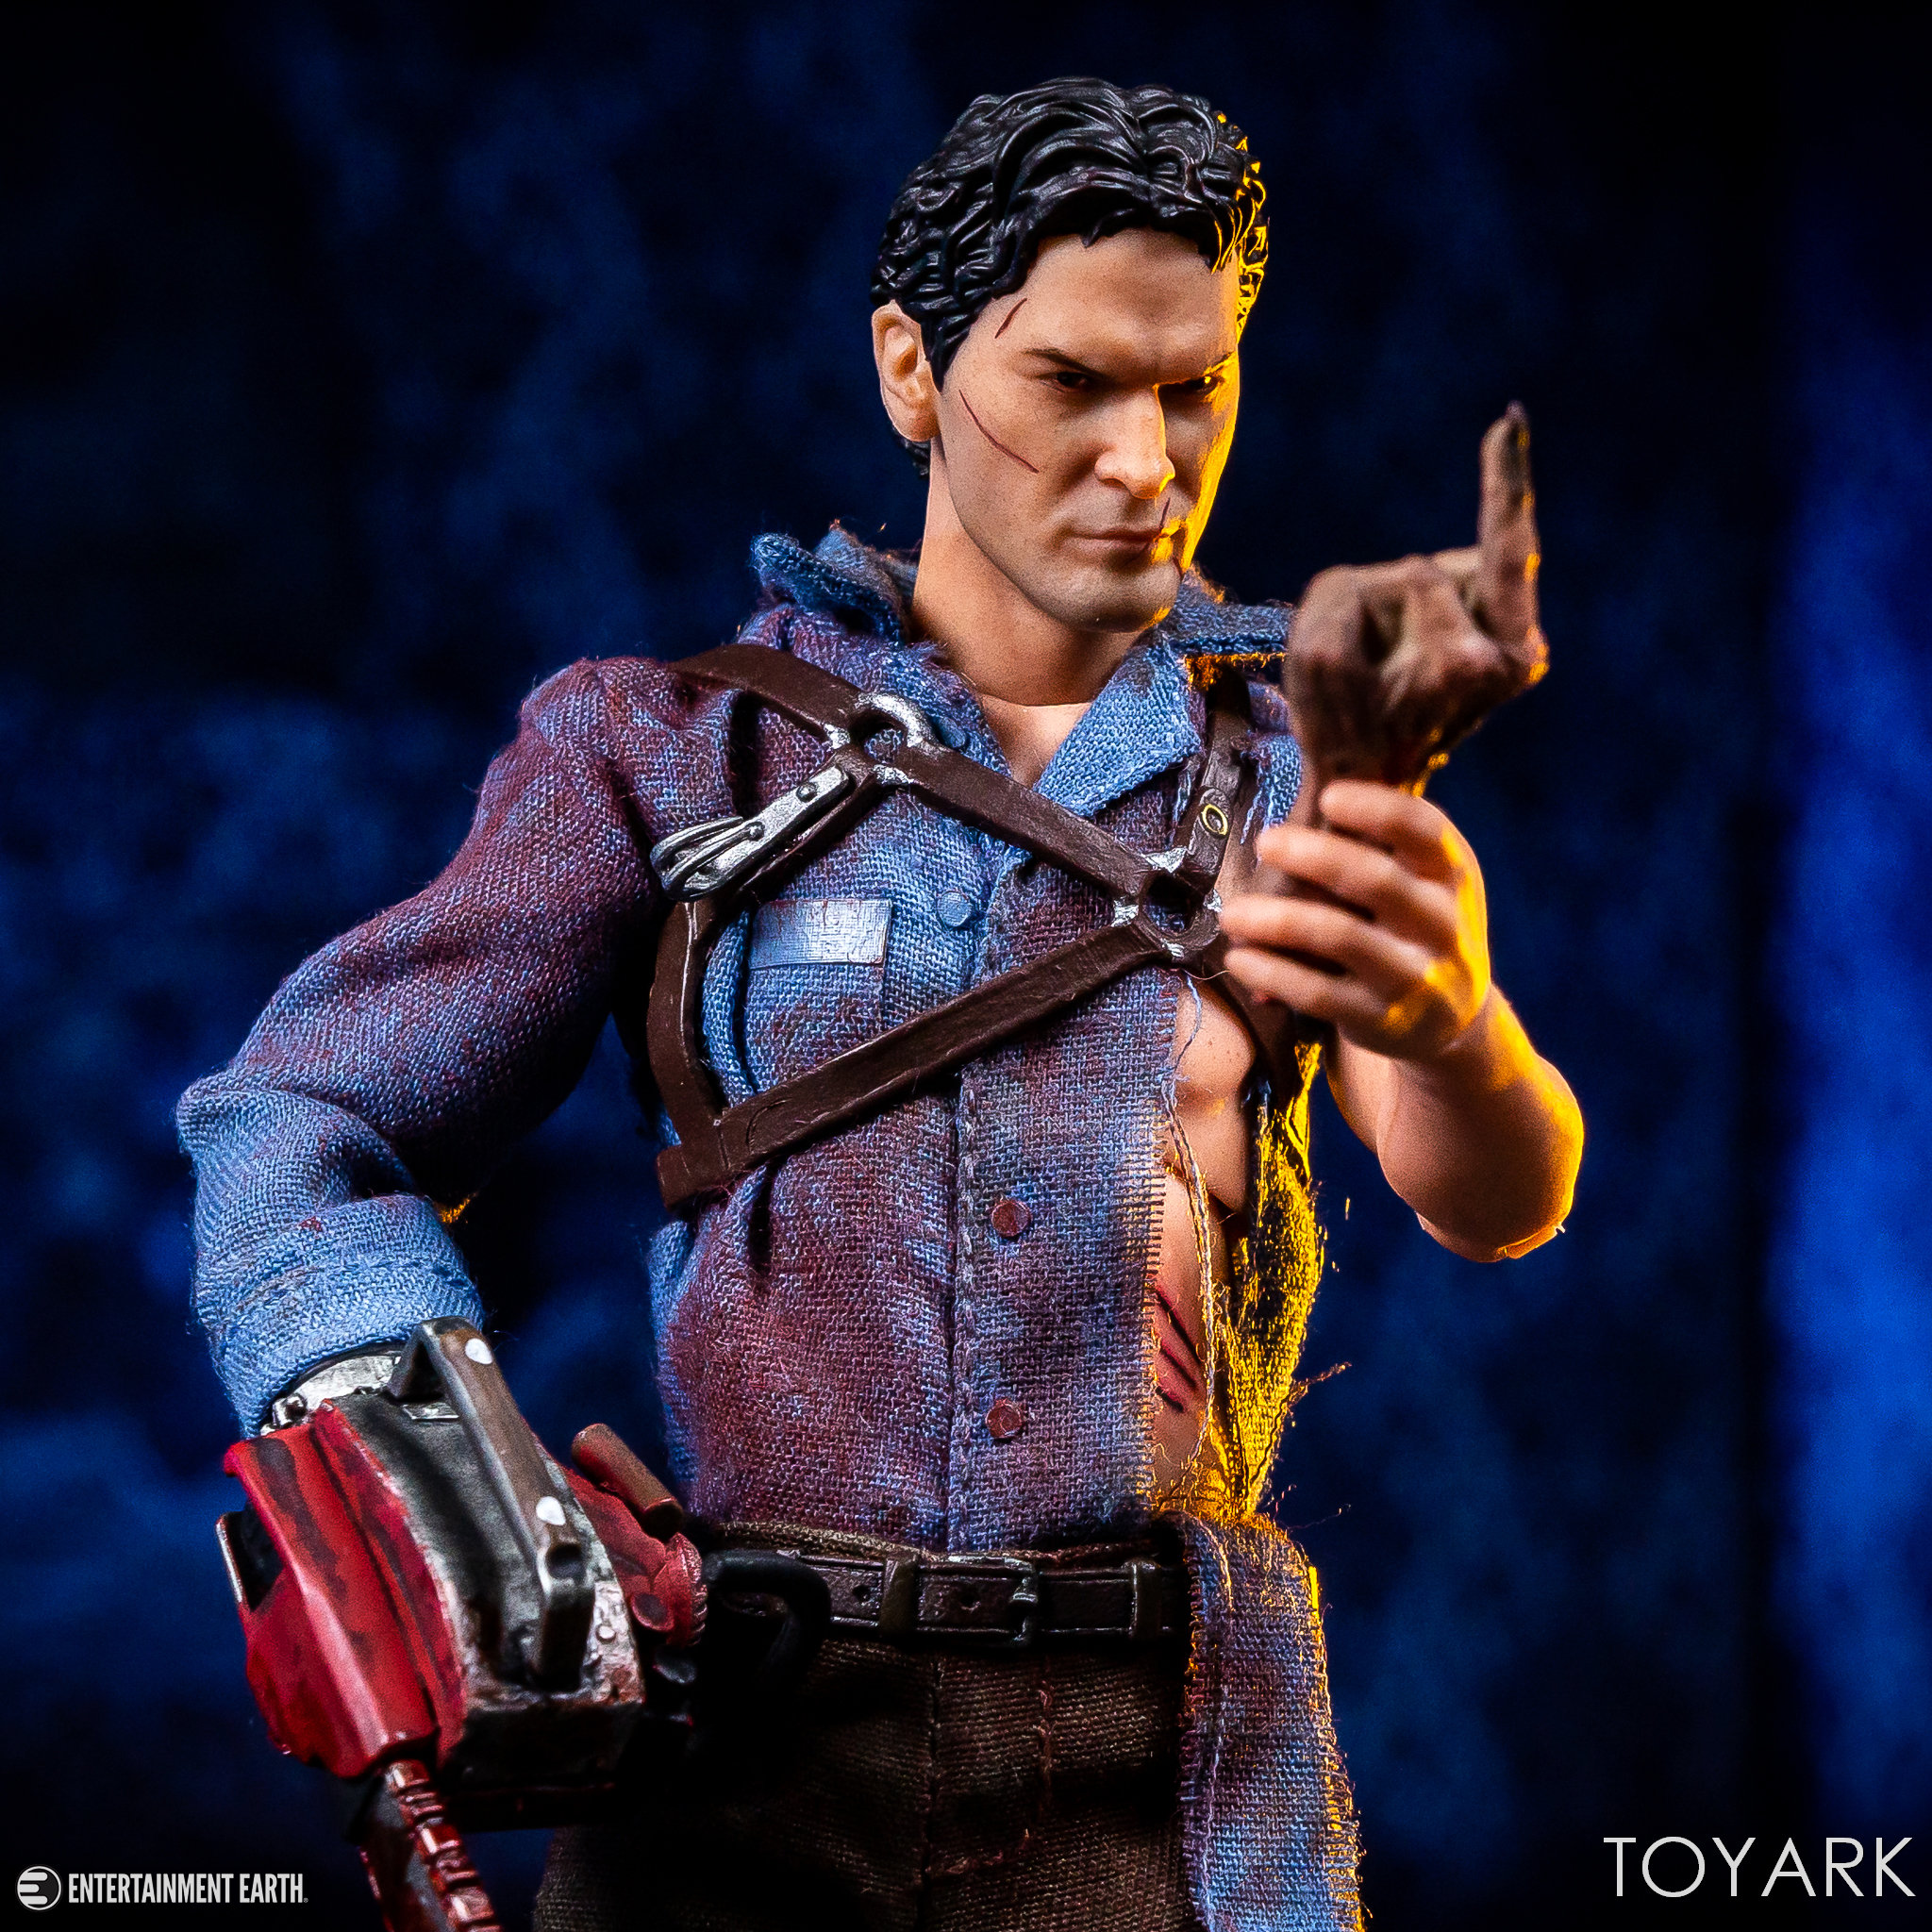 https://news.toyark.com/wp-content/uploads/sites/4/2019/01/Mezco-One12-Evil-Dead-2-Ash-032.jpg